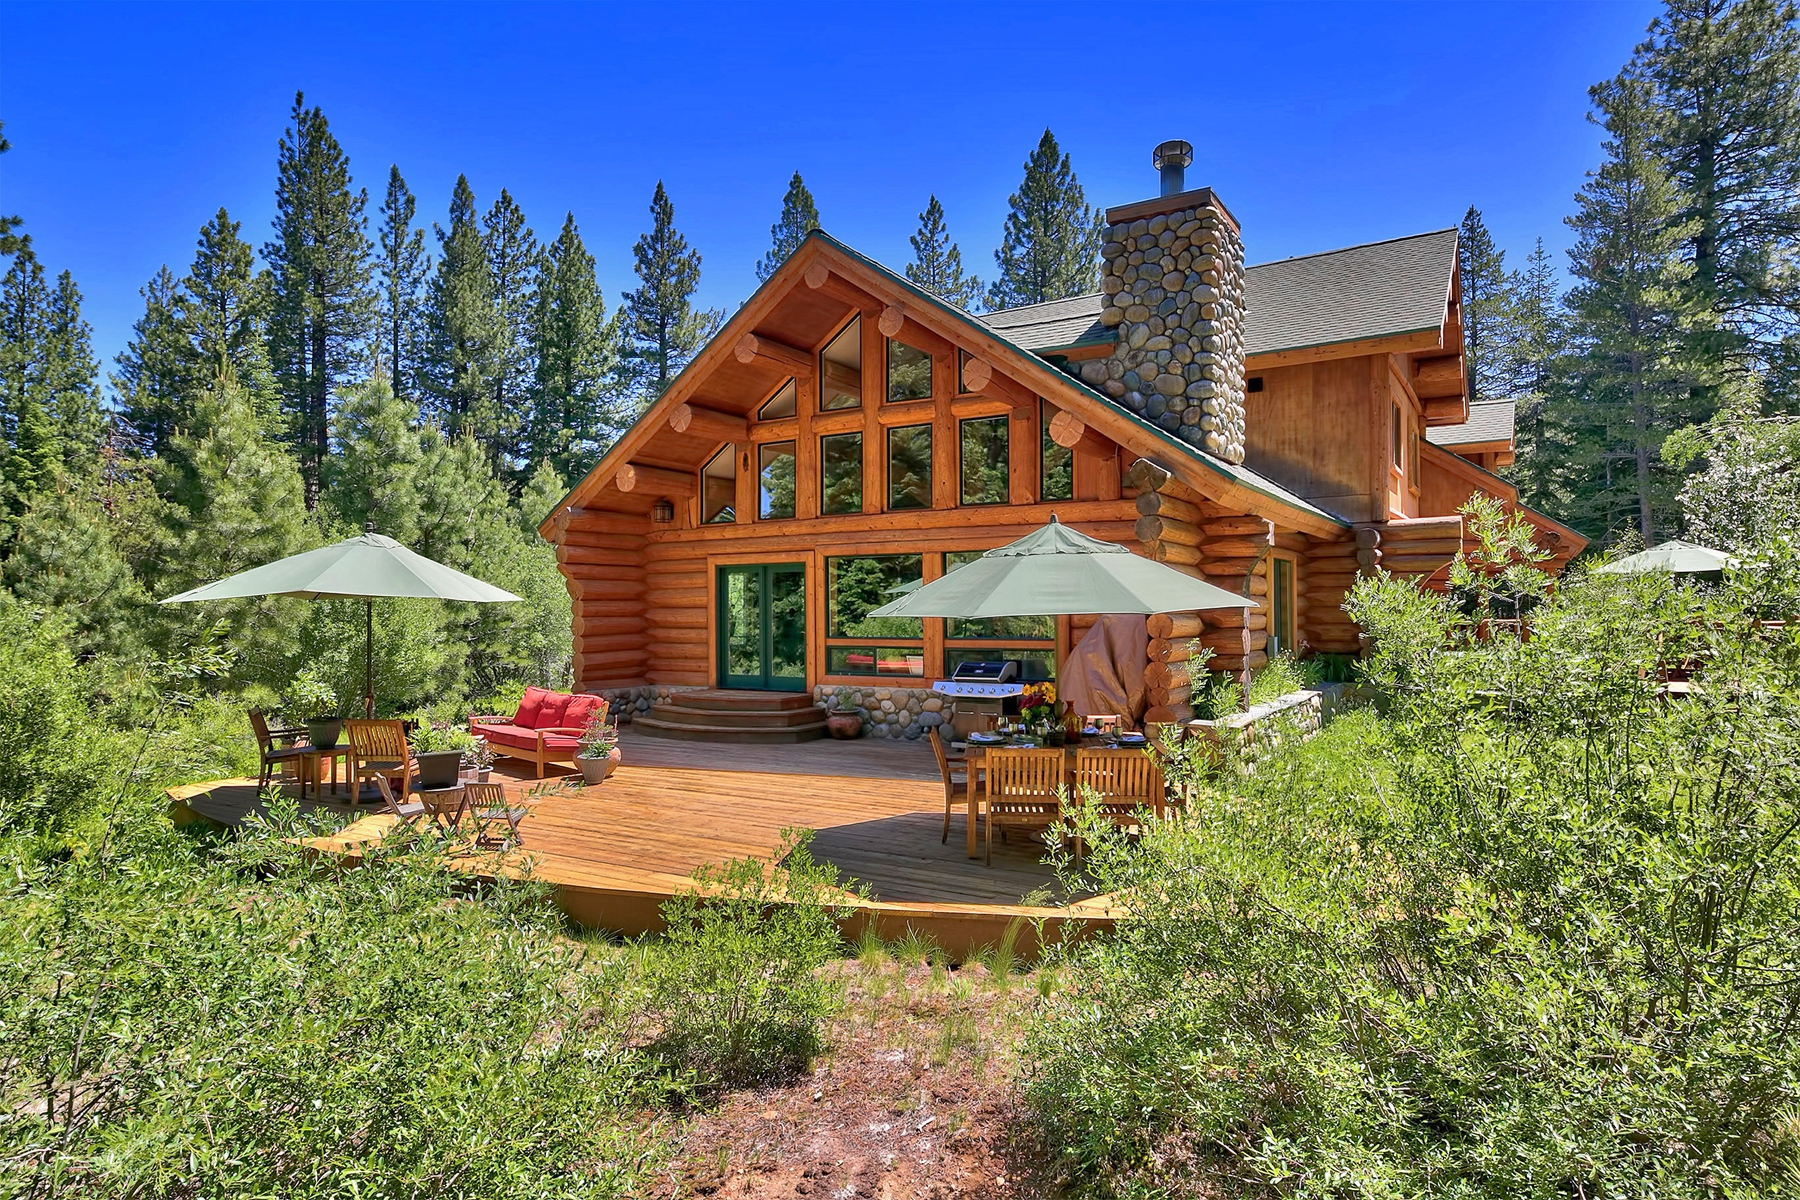 Single Family Home for Active at 11979 Stony Creek Court, Truckee CA 96161 11979 Stony Creek Court Truckee, California 96161 United States